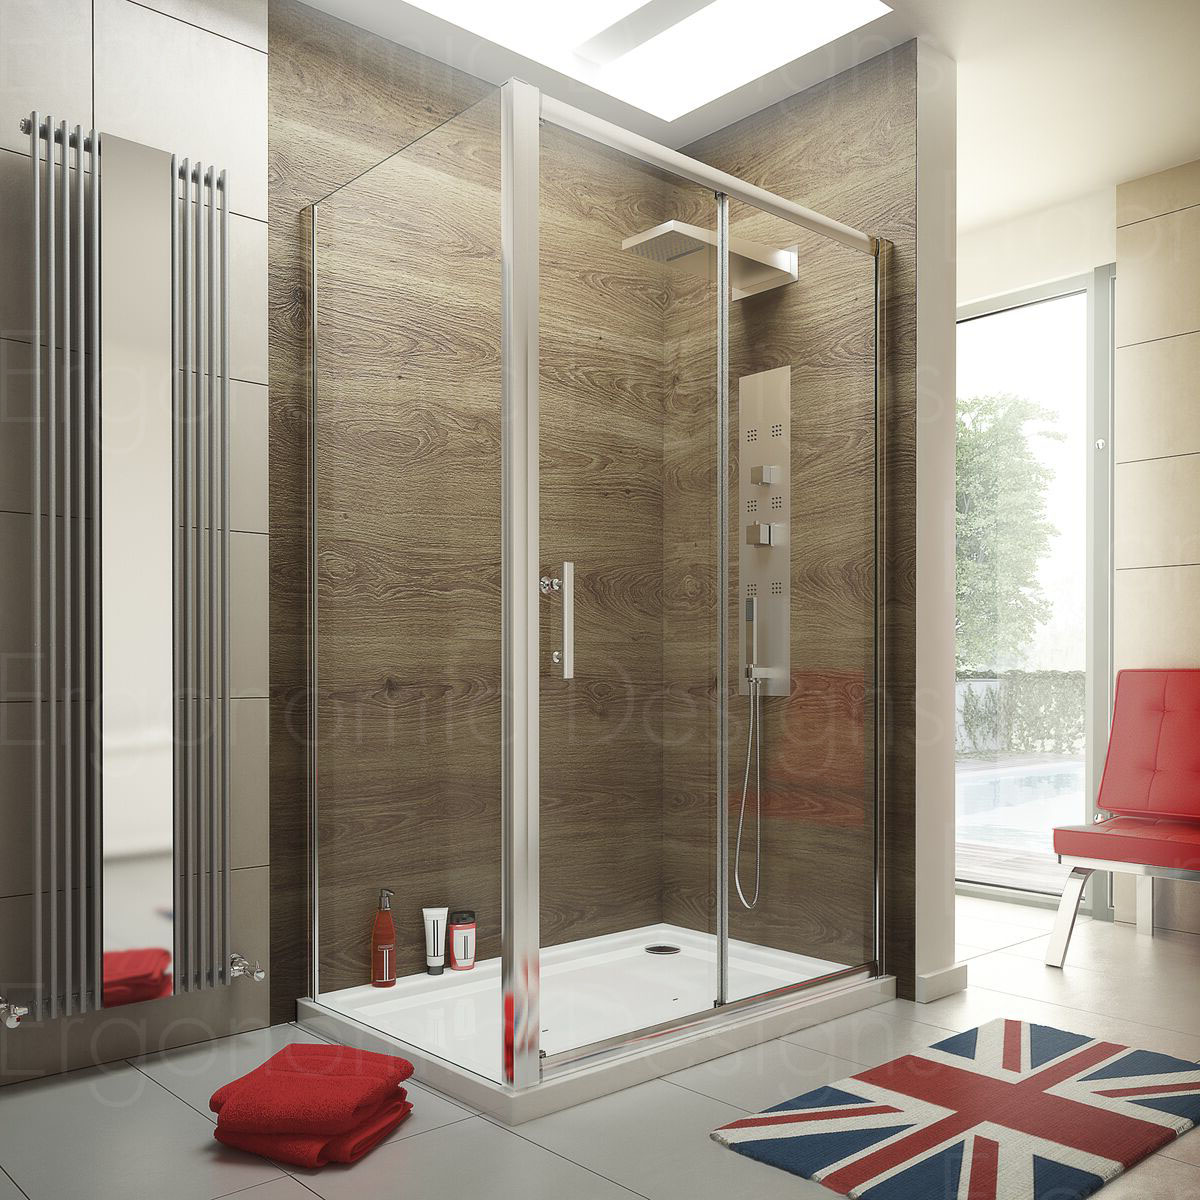 1000 x 700 Sliding Door Shower Enclosure Glass Cubicle with Stone ...